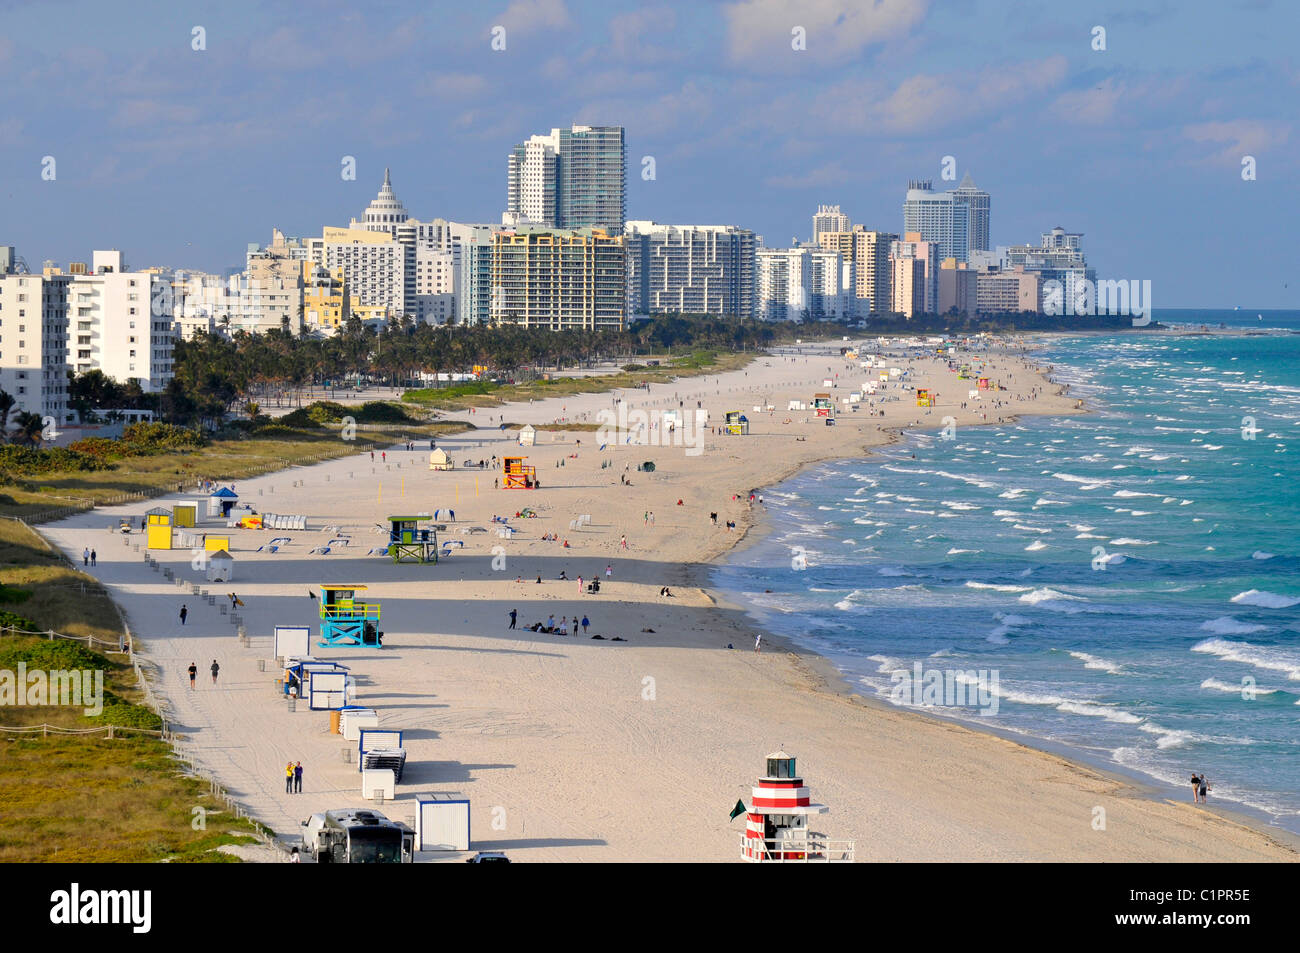 Views of Miami Beach Florida from cruise ship departing harbor - Stock Image